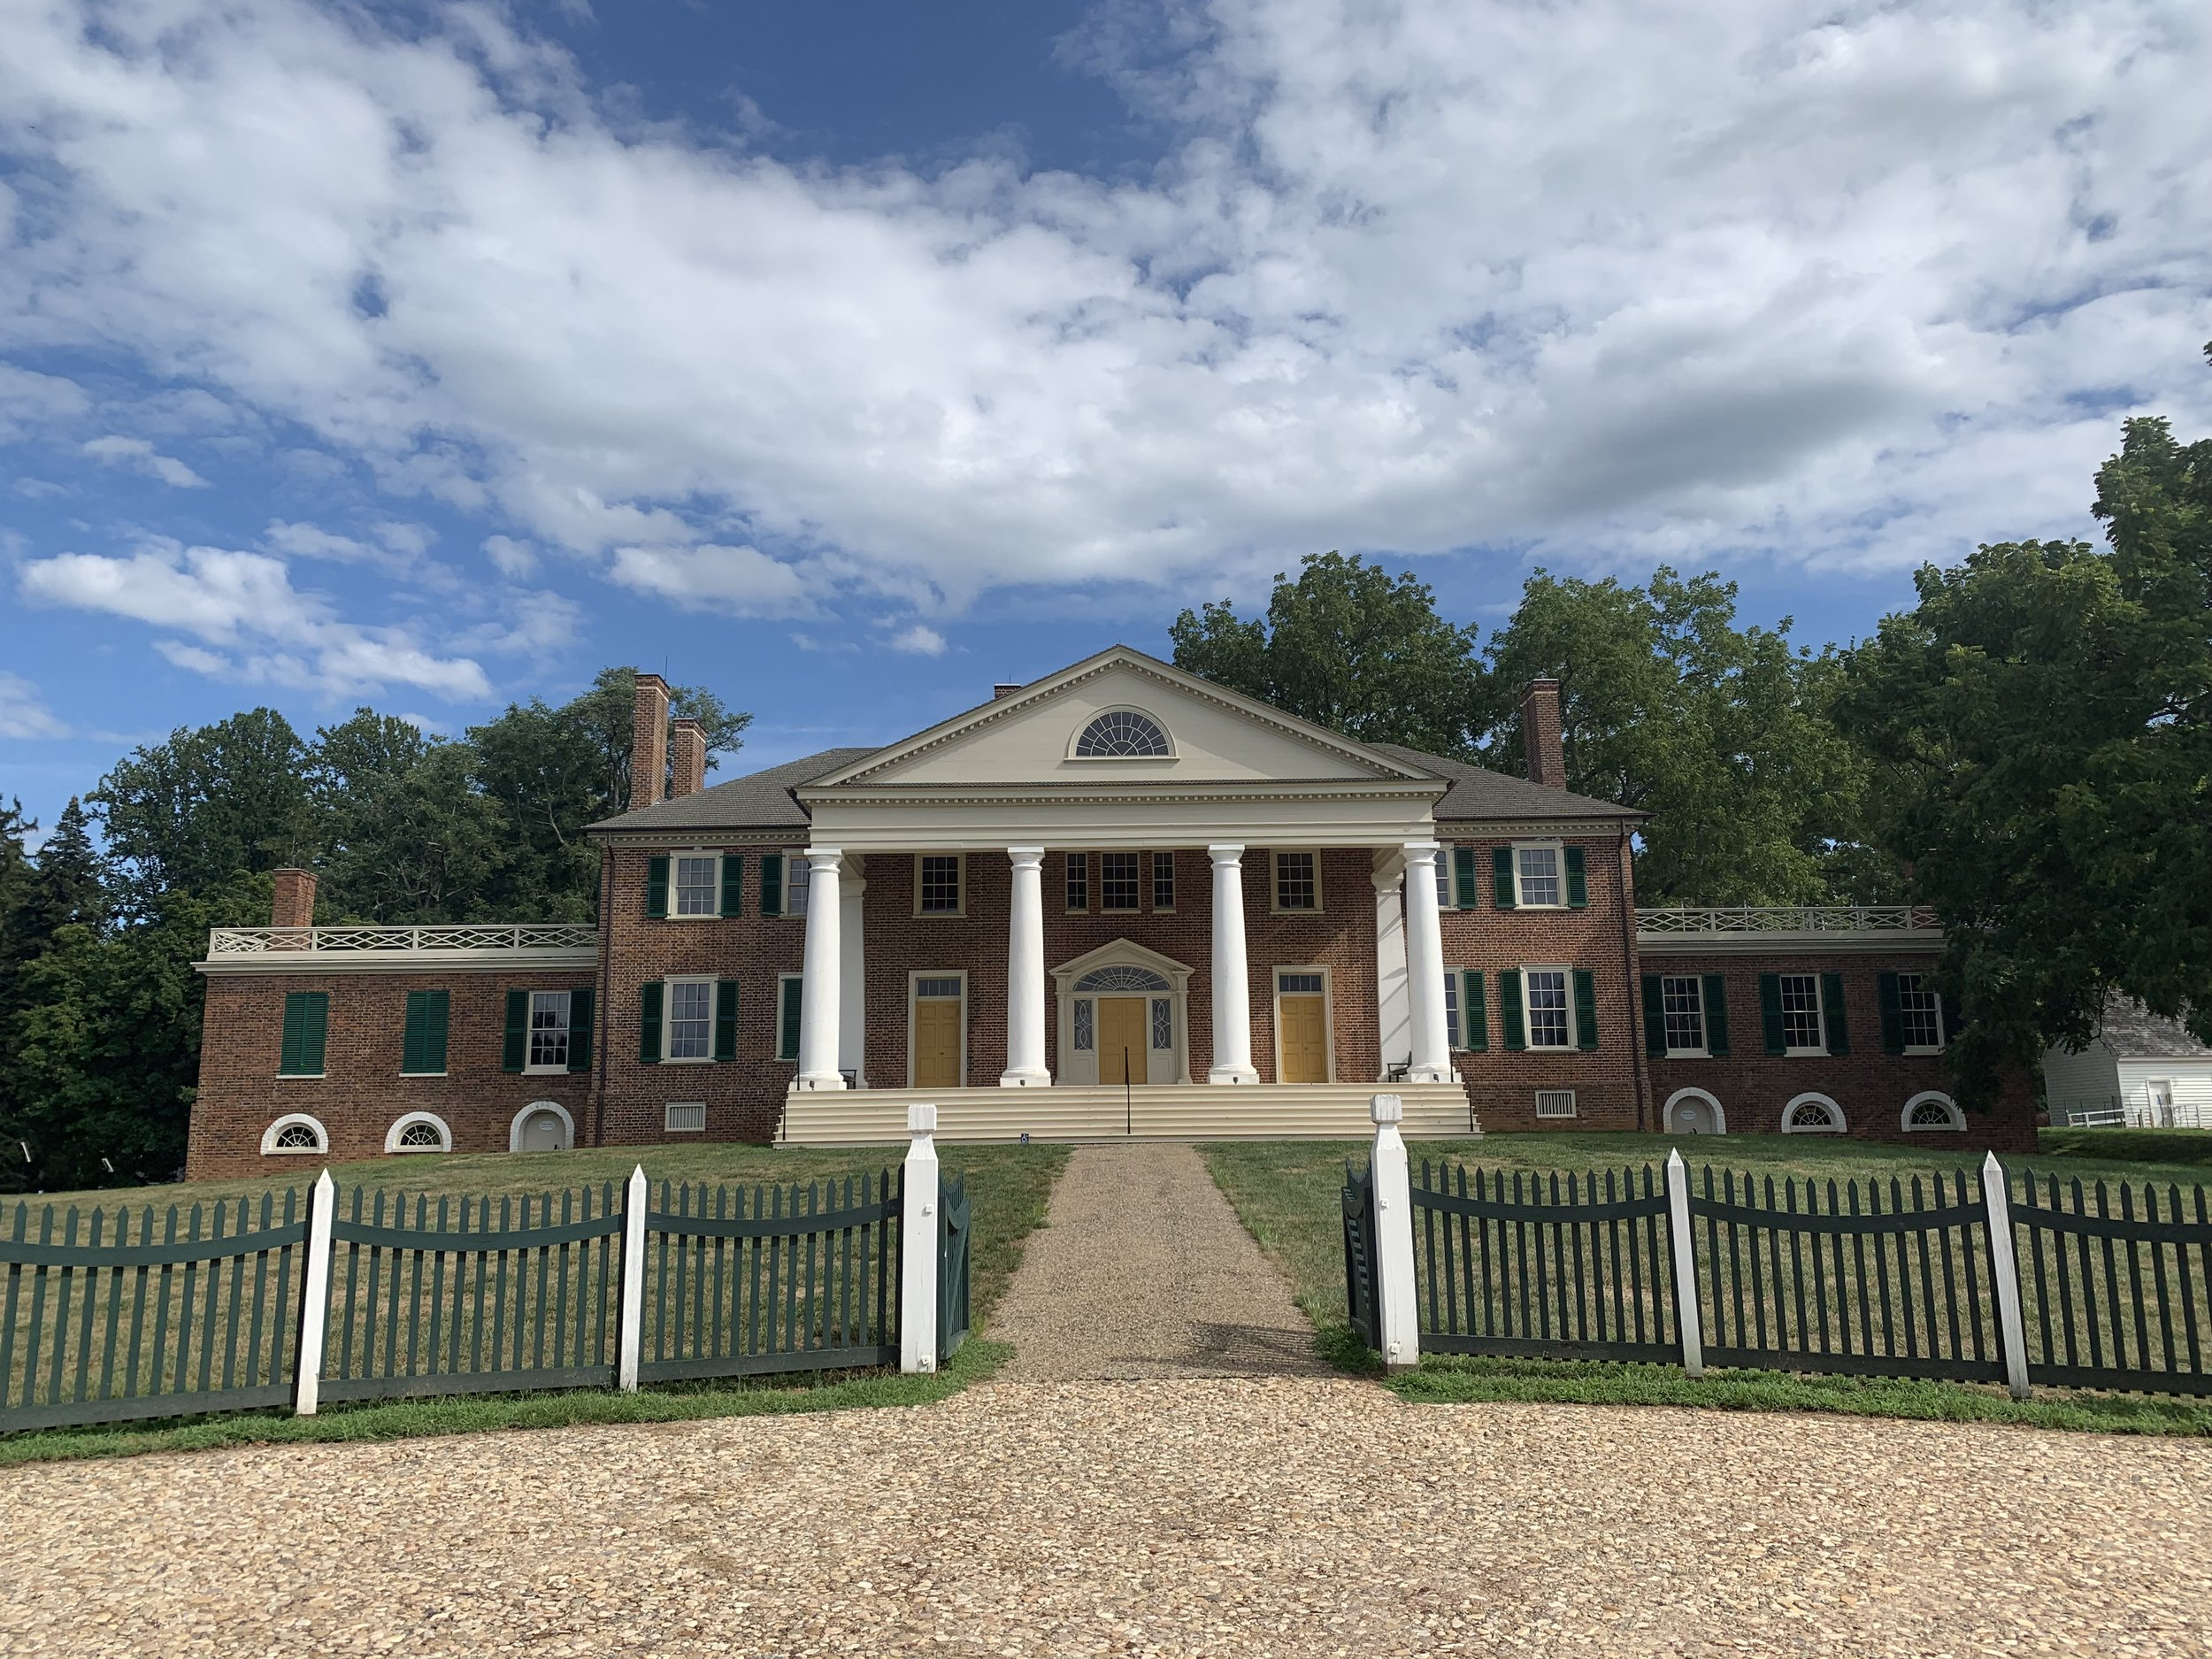 Montpelier, Montpelier Station, Virginia. Photo by Renée Ater, August 2019.